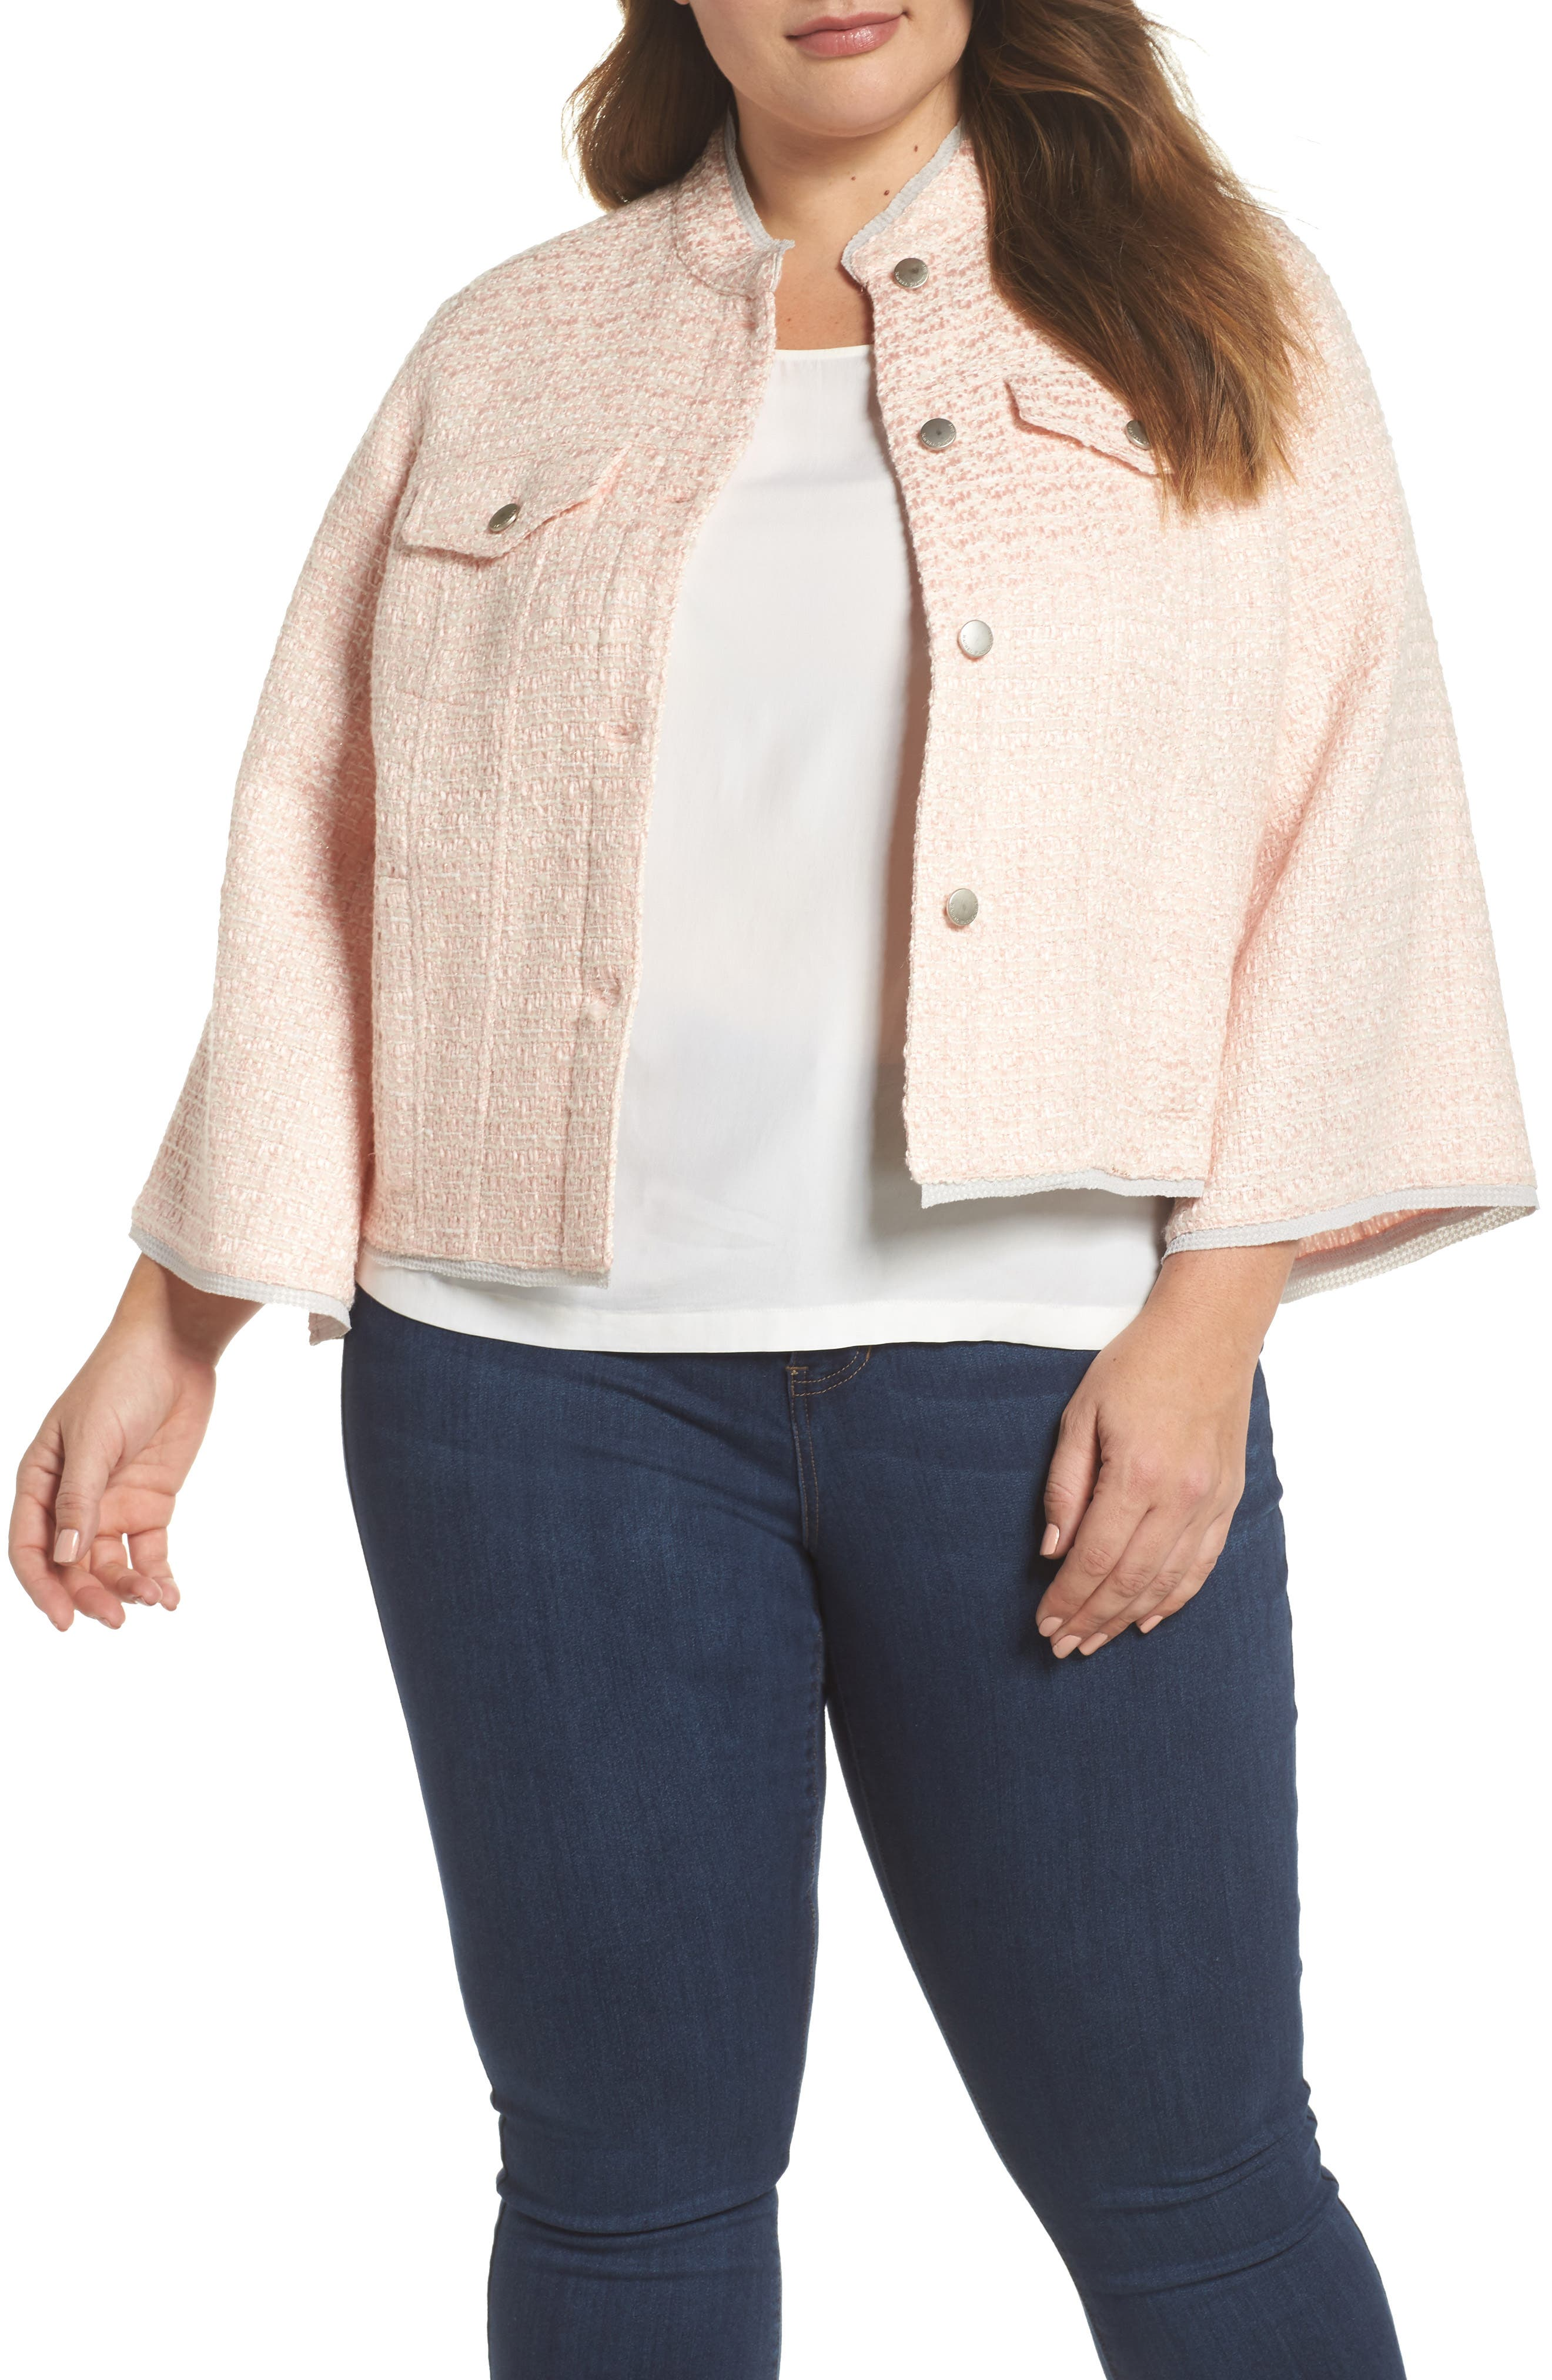 Bell Sleeve Crop Tweed Jacket,                         Main,                         color, Ice Pink Combo